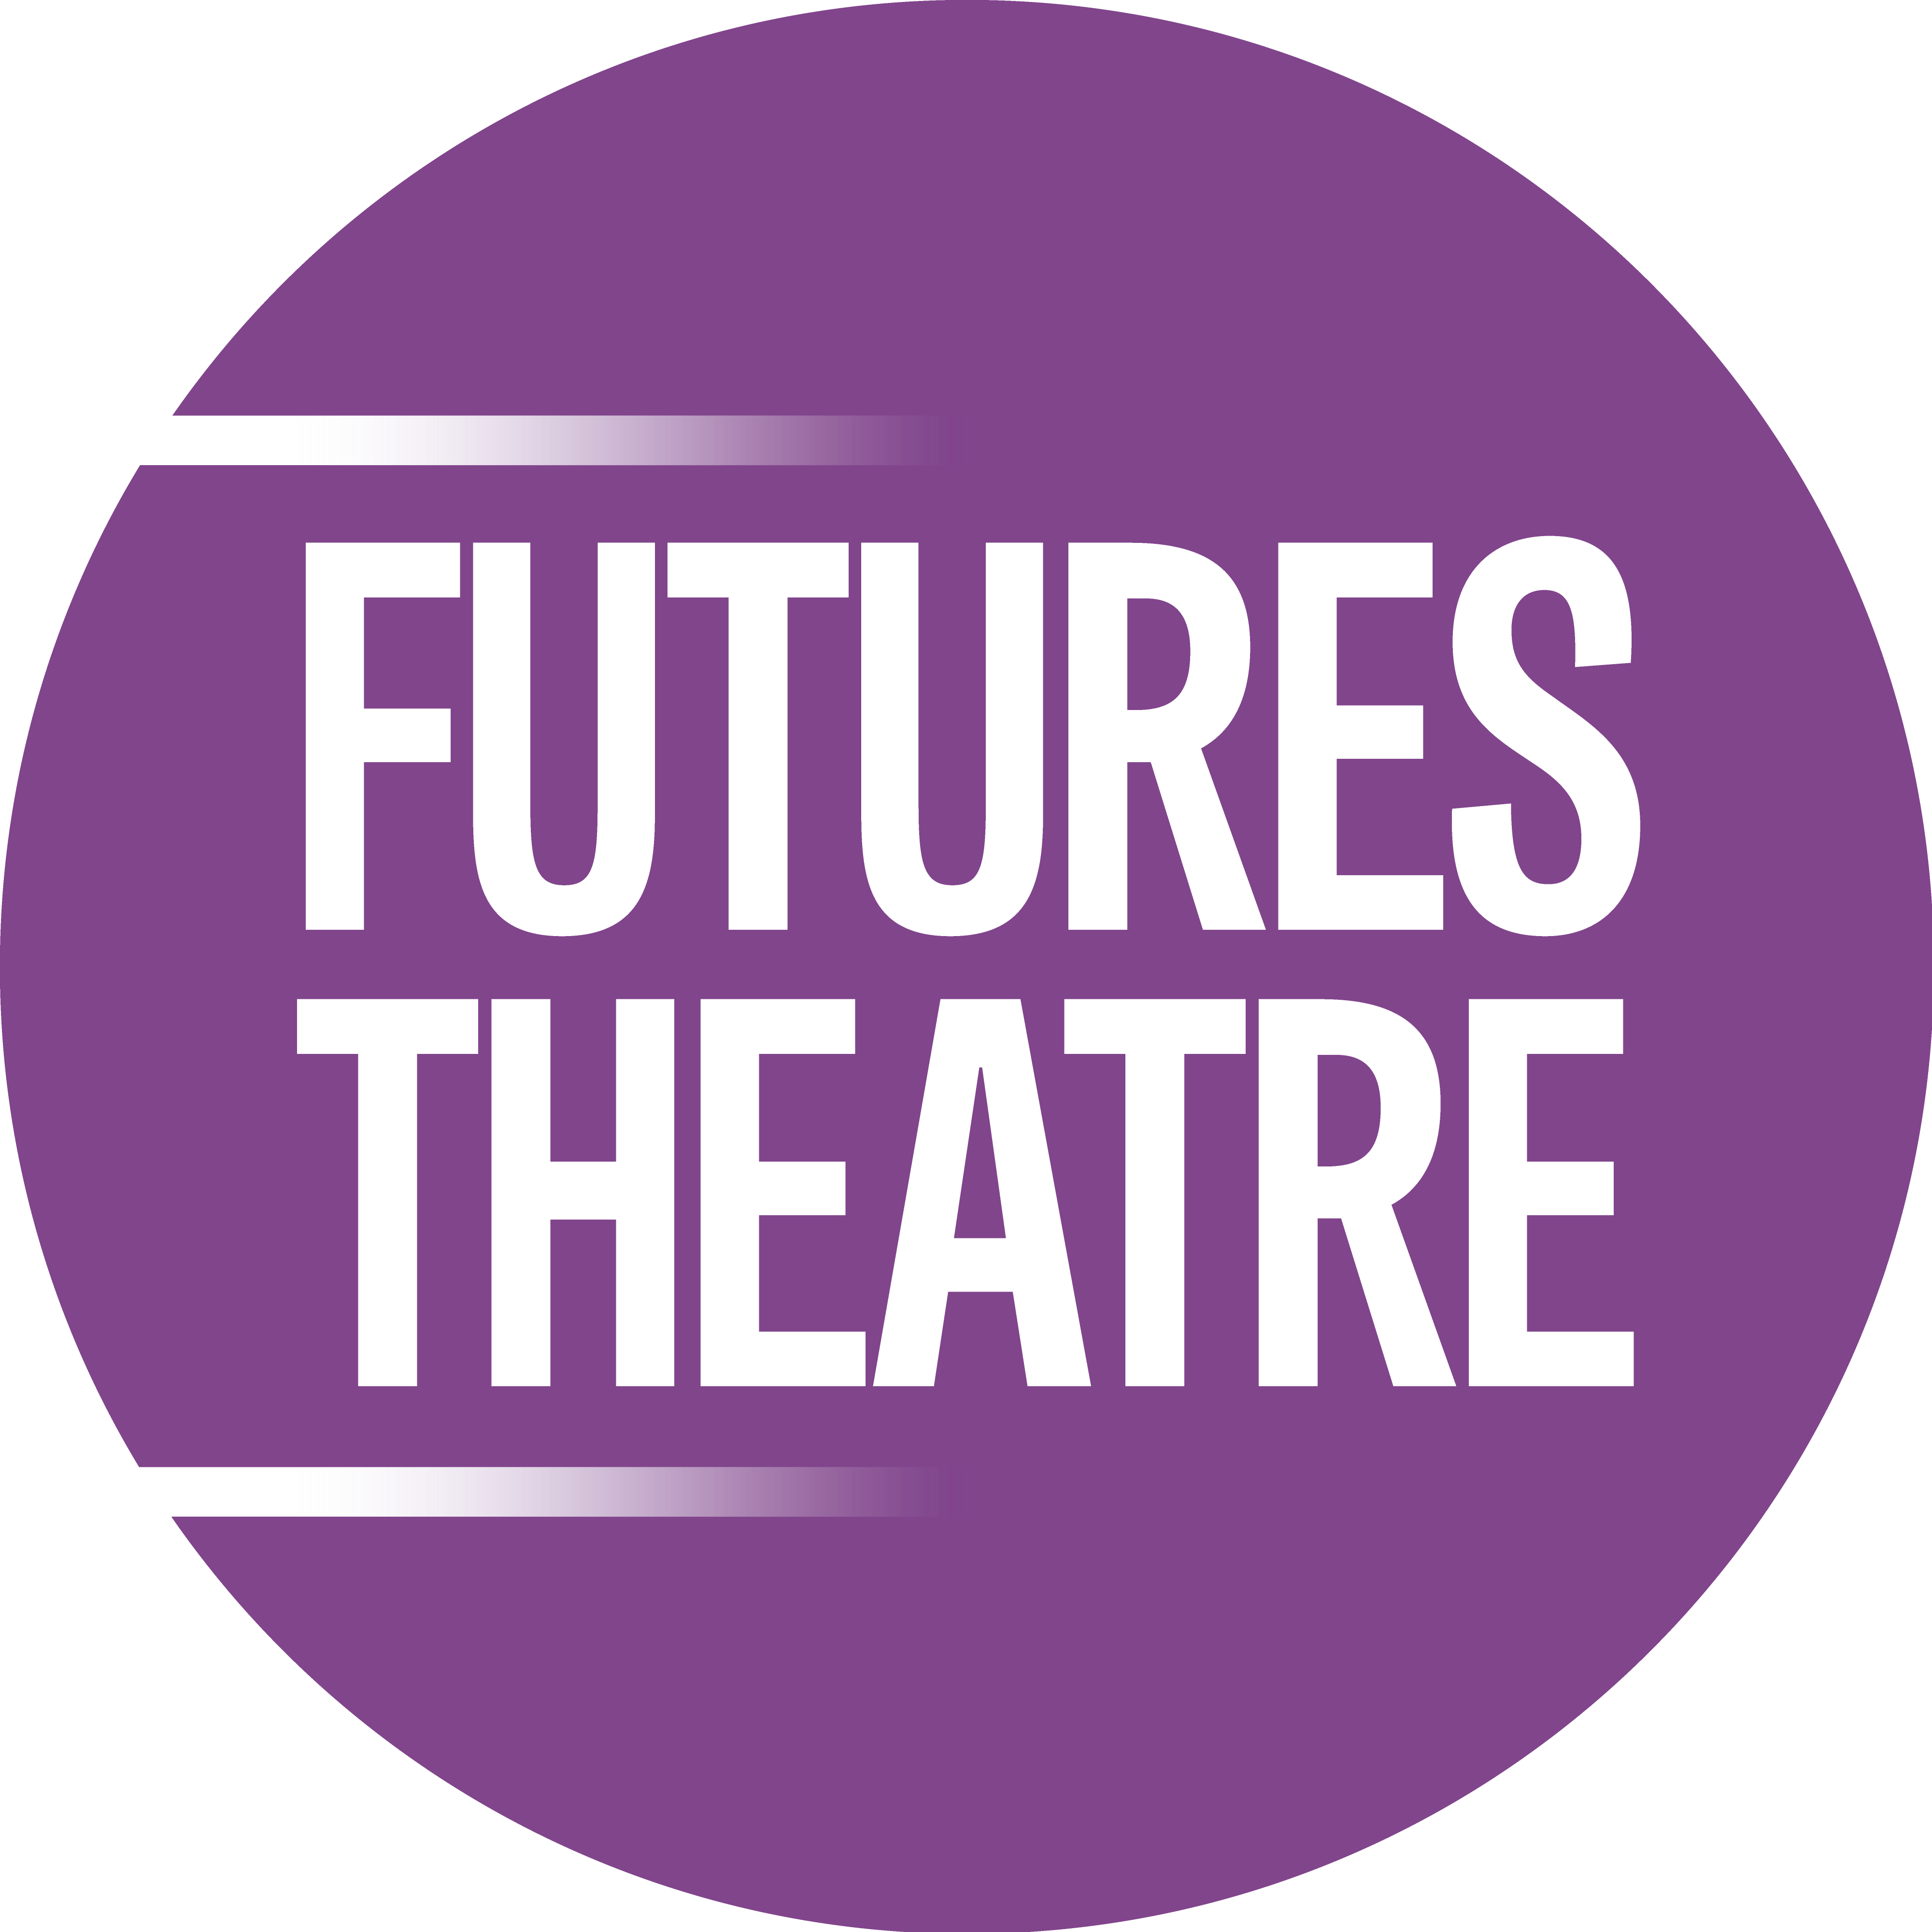 Futures theatre co twitter. Poetry clipart theater